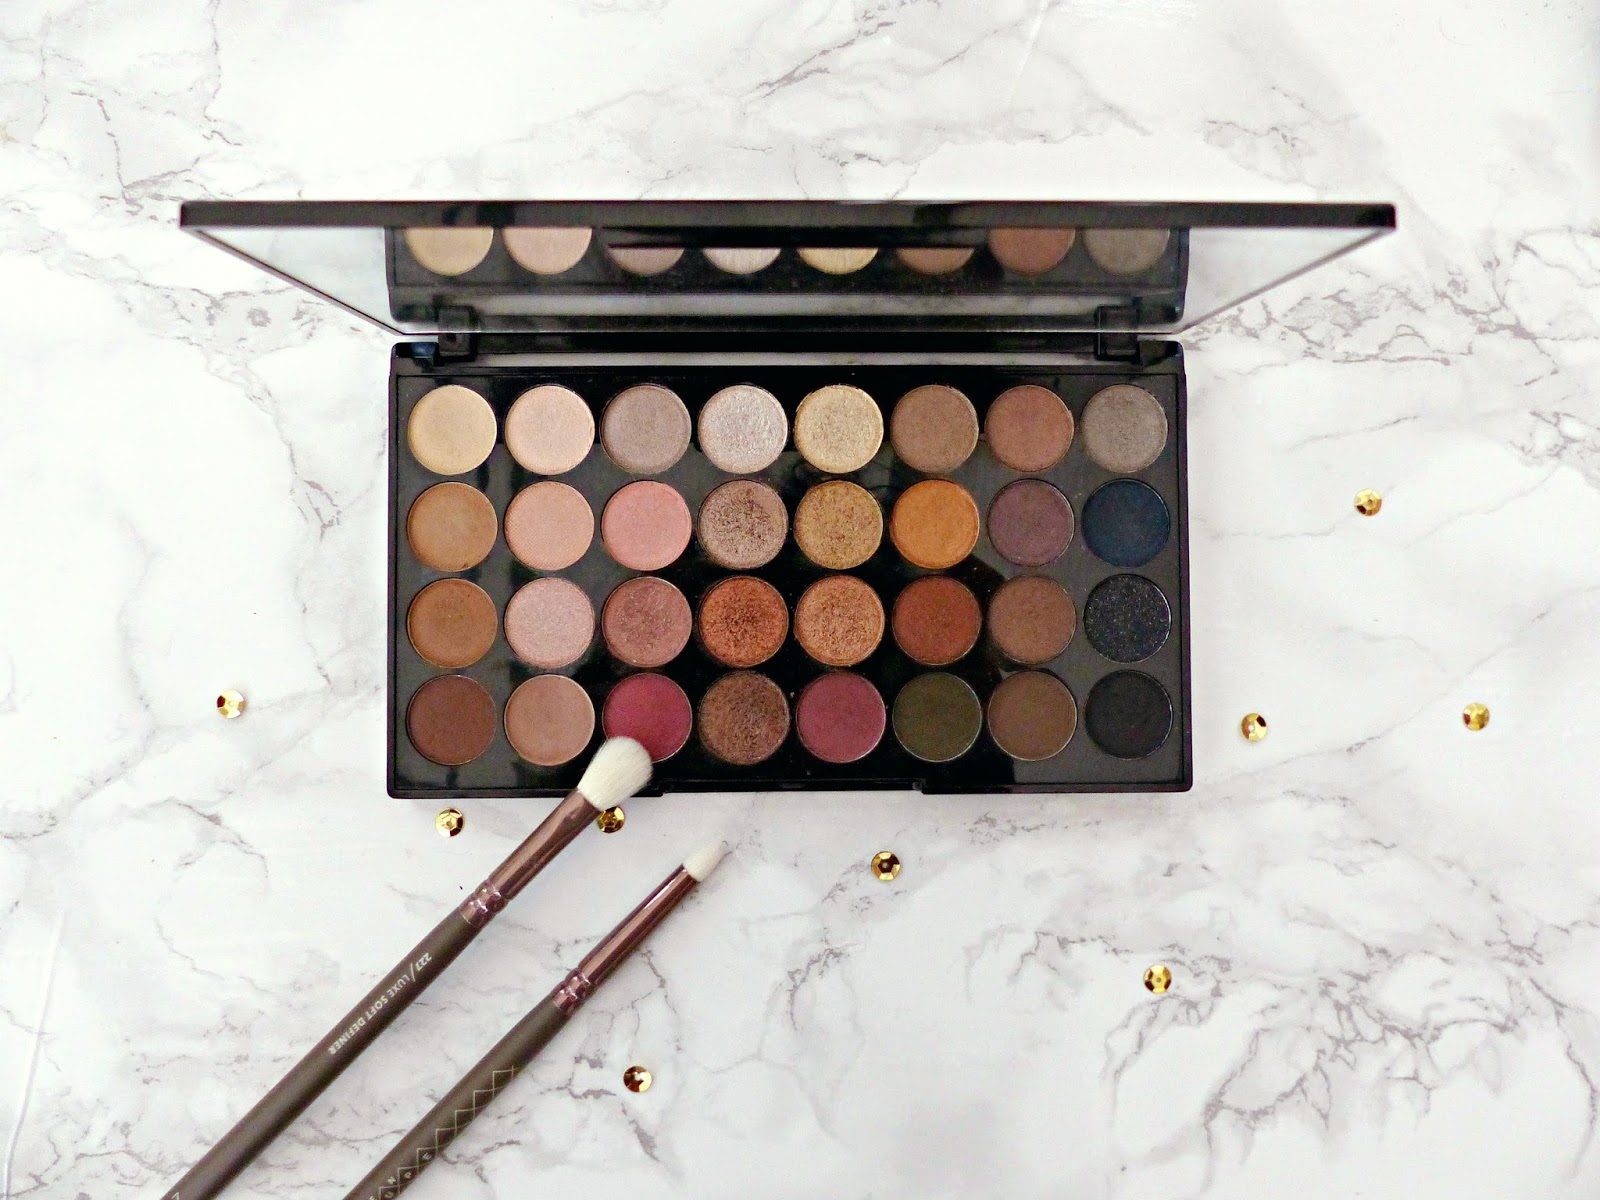 Review: Makeup Revolution Ultra 32 Shade Eyeshadow Palette in Flawless